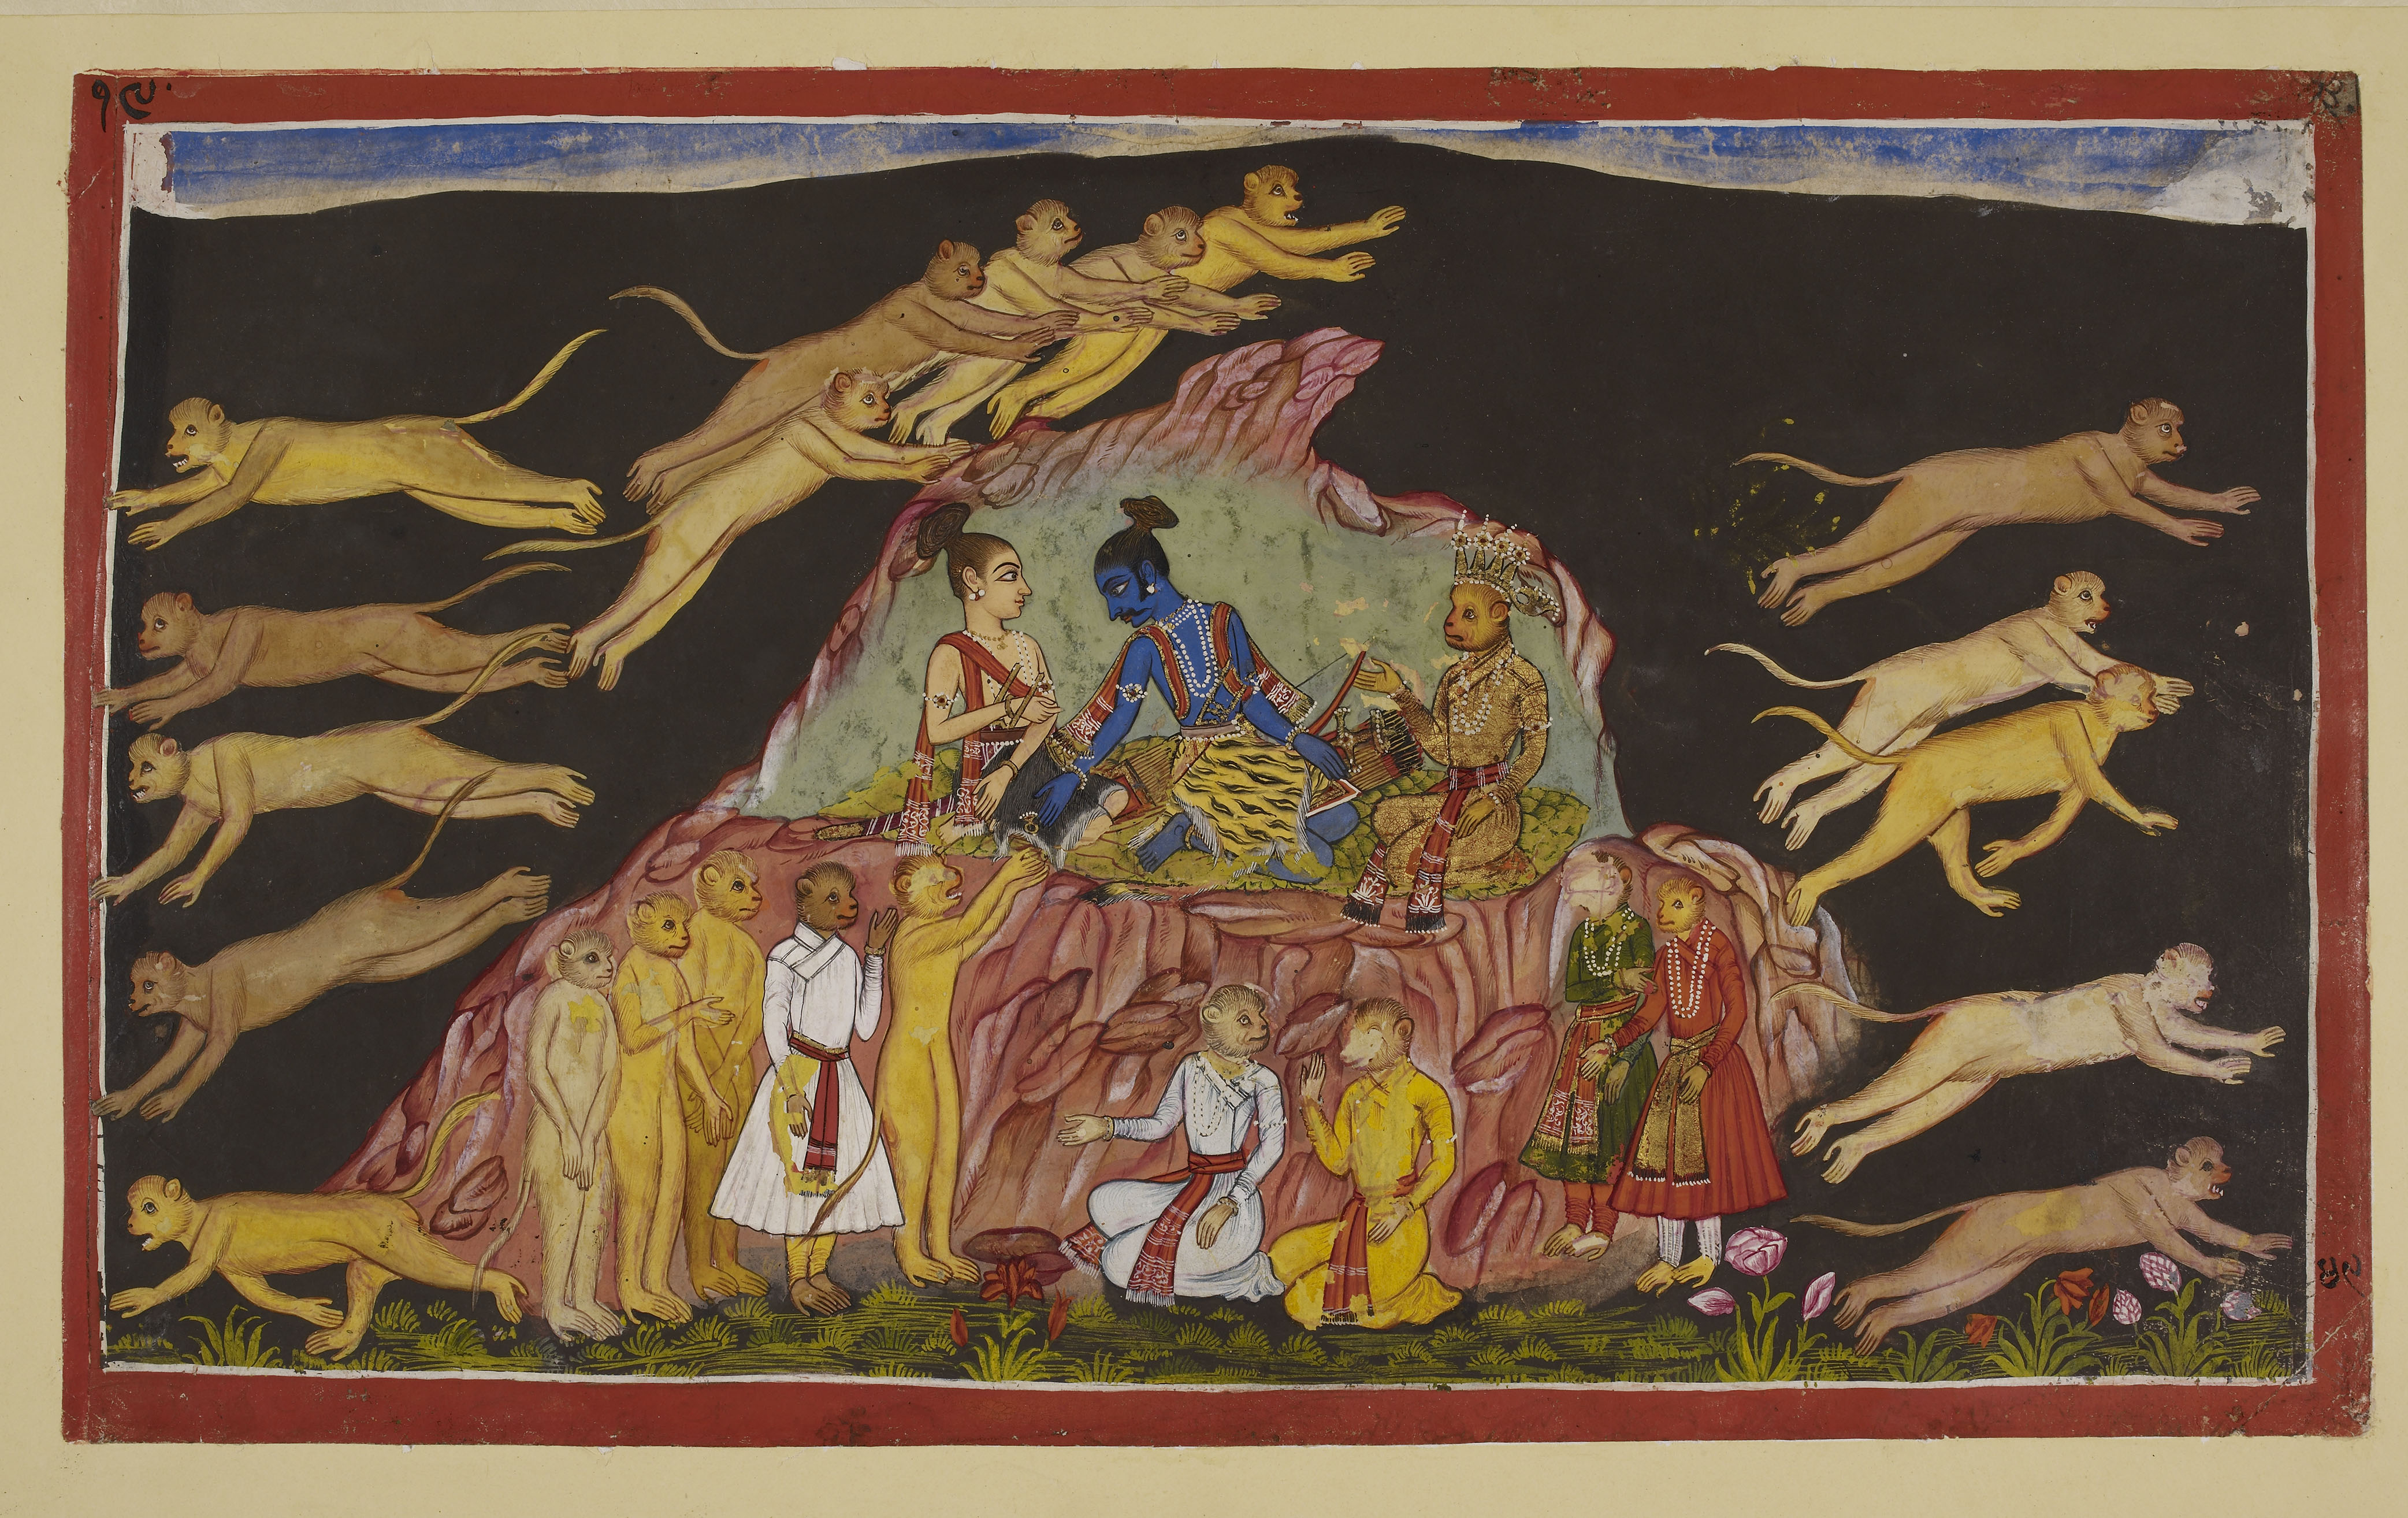 Folio from Book IV of the Ramayana. Copyright: British Library Board